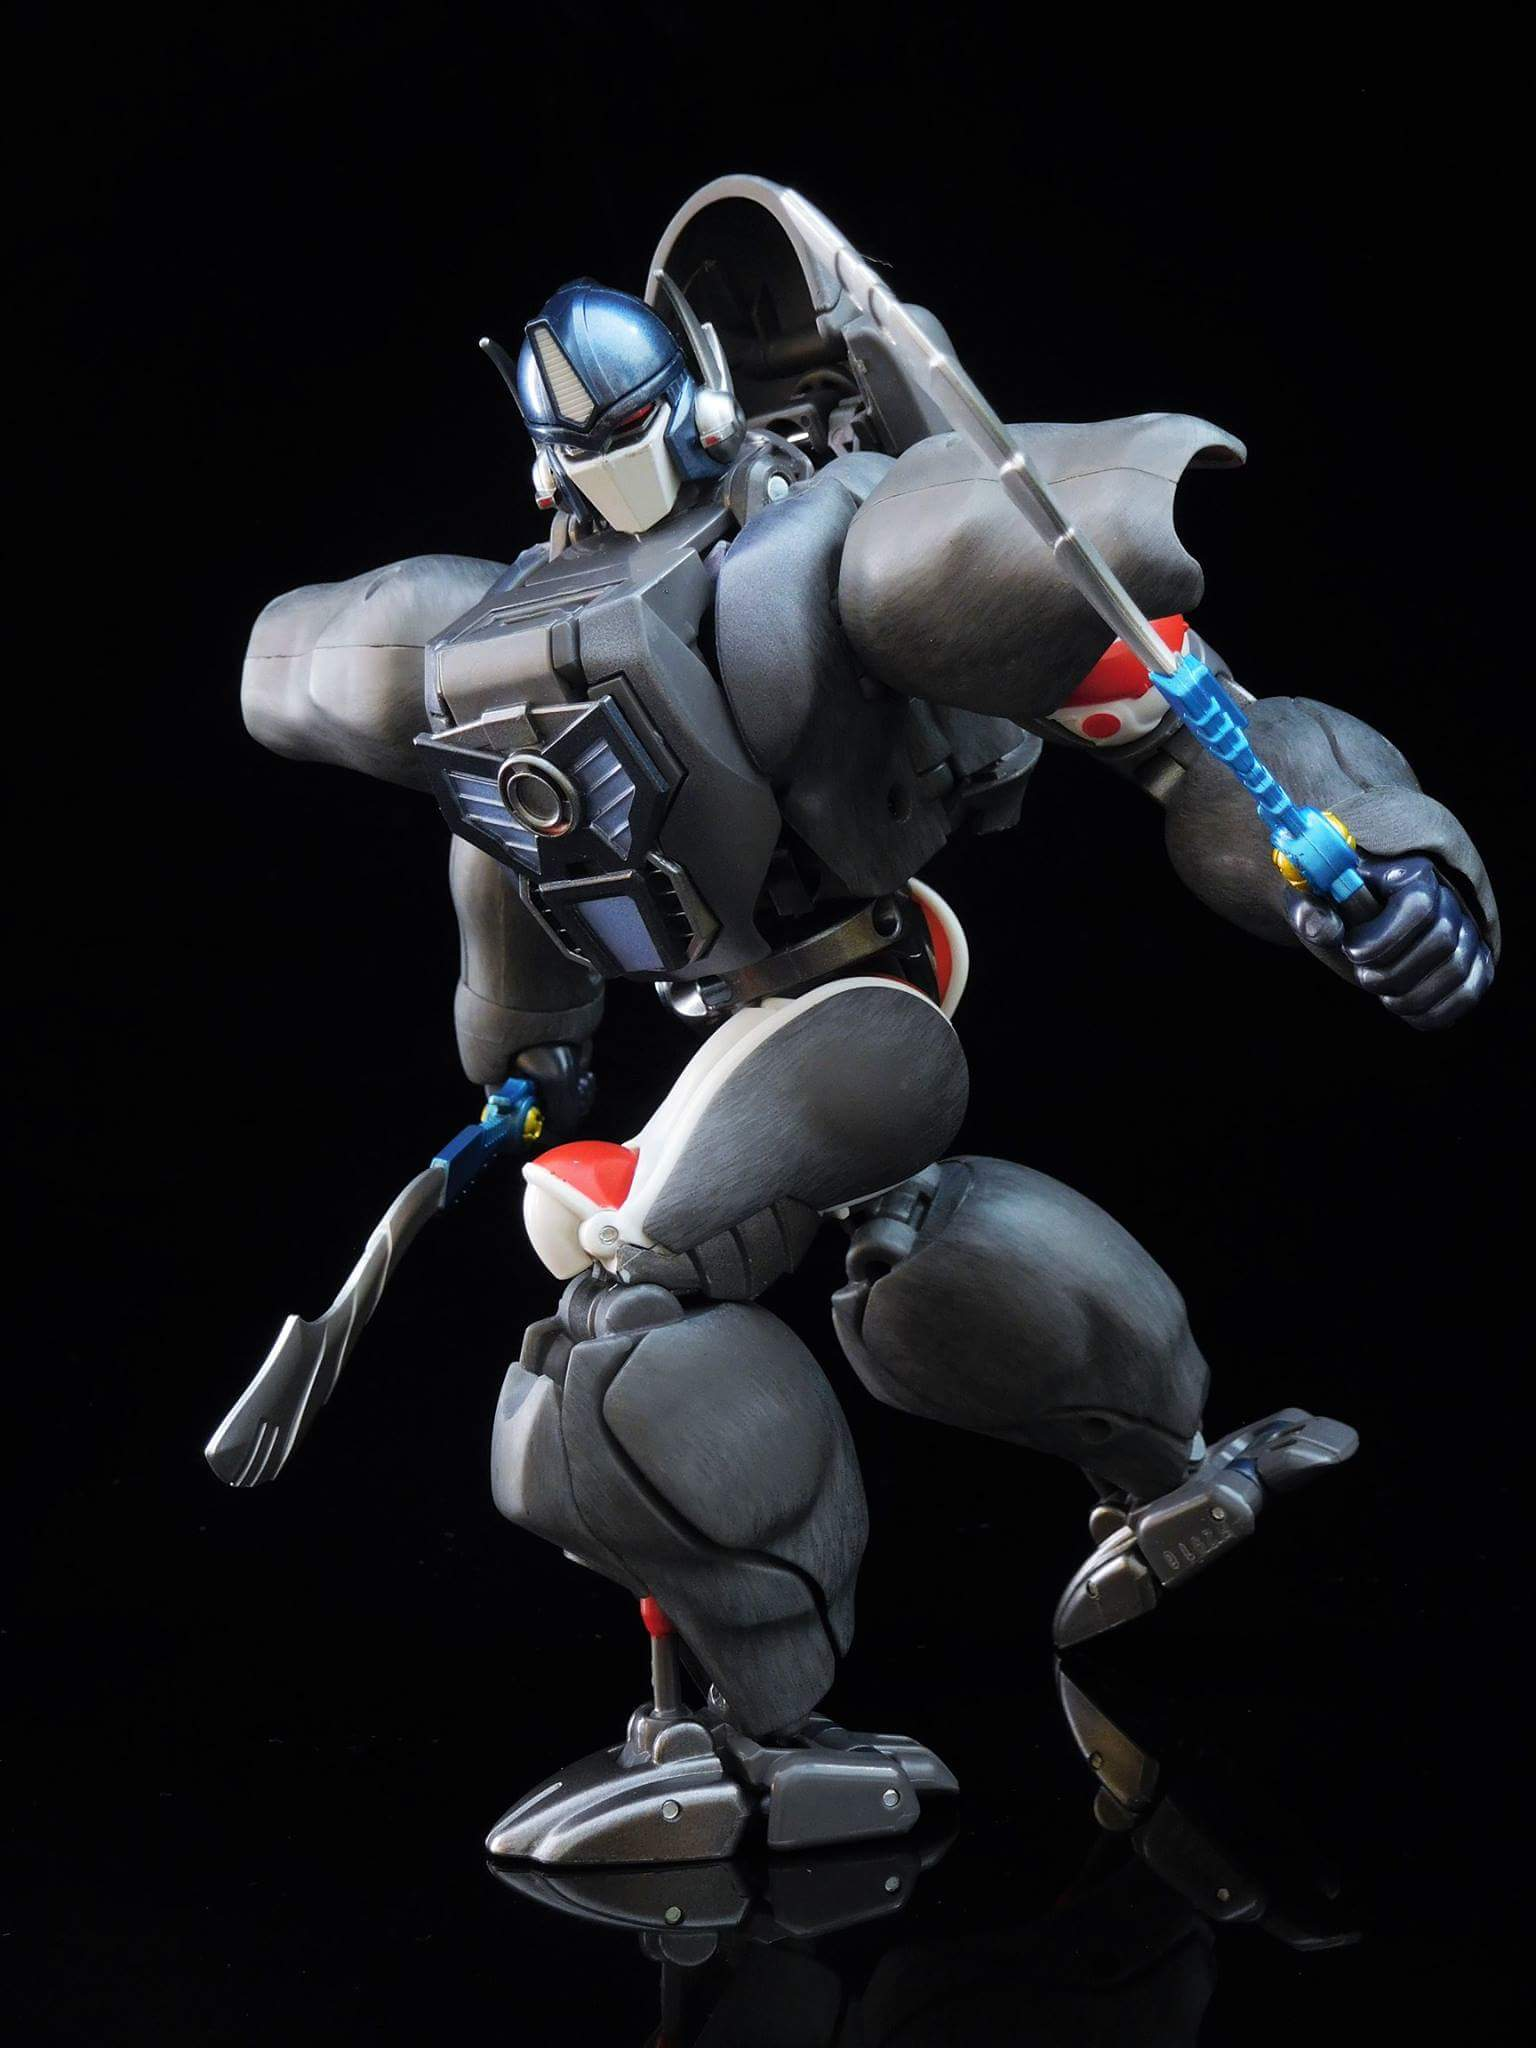 [Masterpiece] MP-32, MP-38 Optimus Primal et MP-38+ Burning Convoy (Beast Wars) - Page 3 AwRZyMpQ